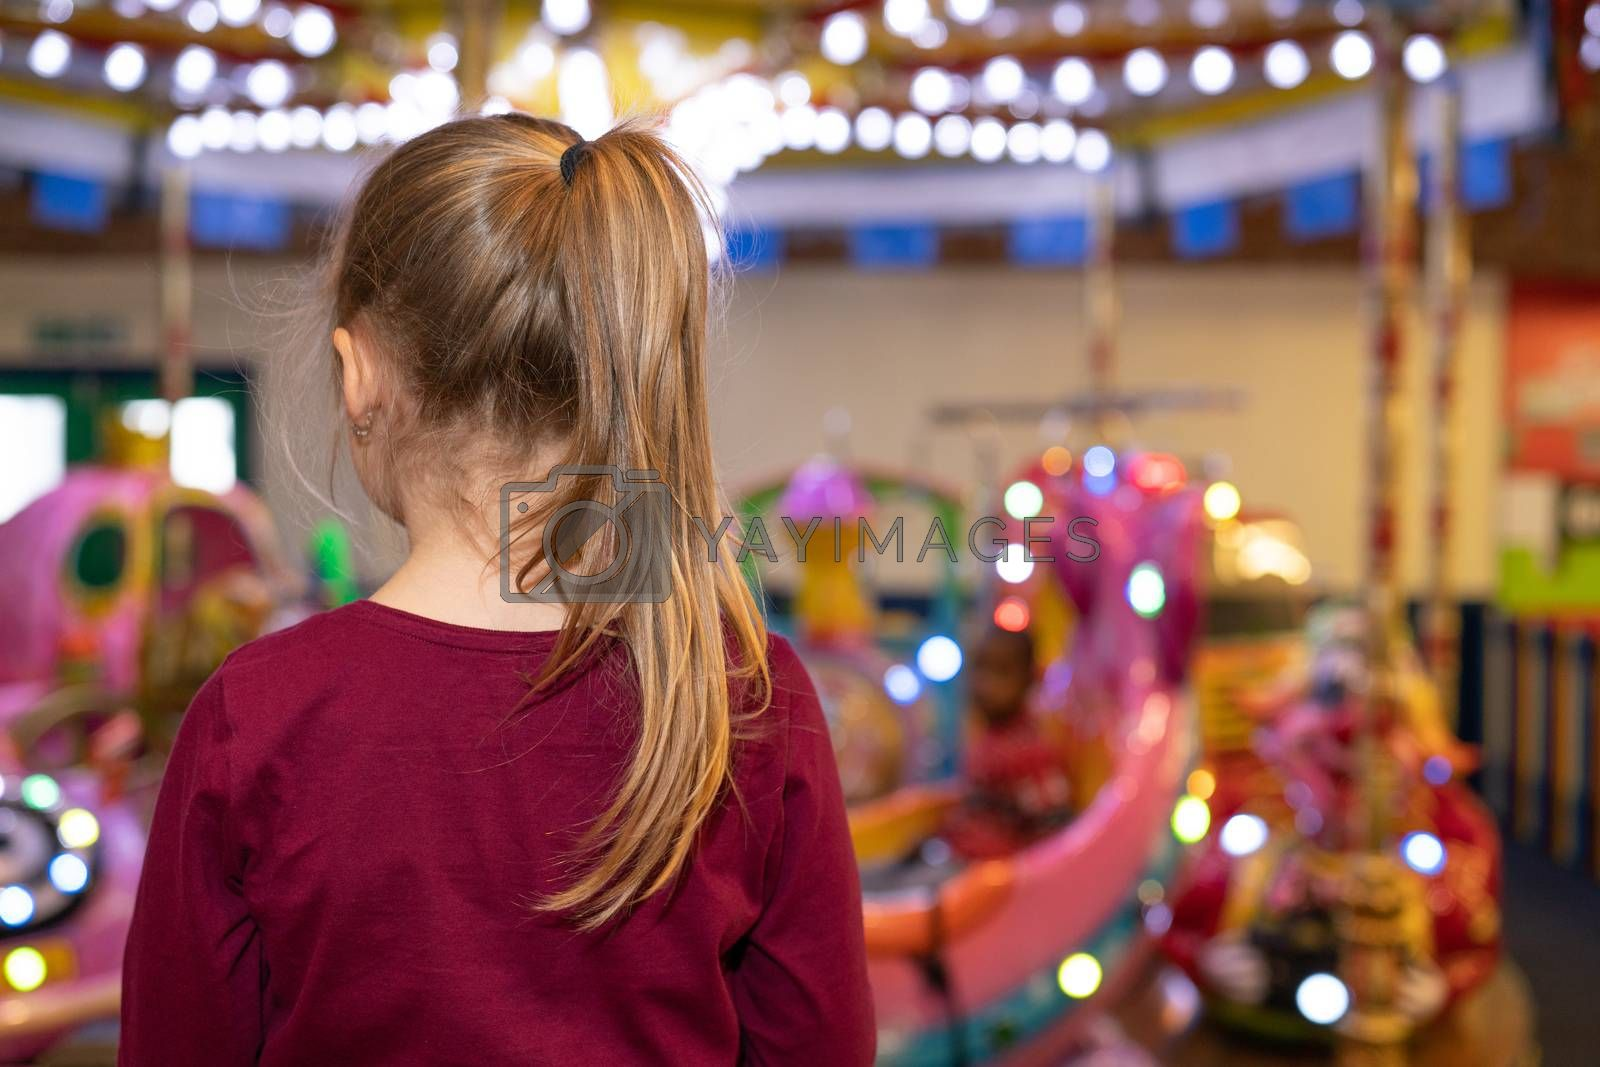 Cute young girl with a ponytail looking at a carousel in an indoor funfair amusement playground